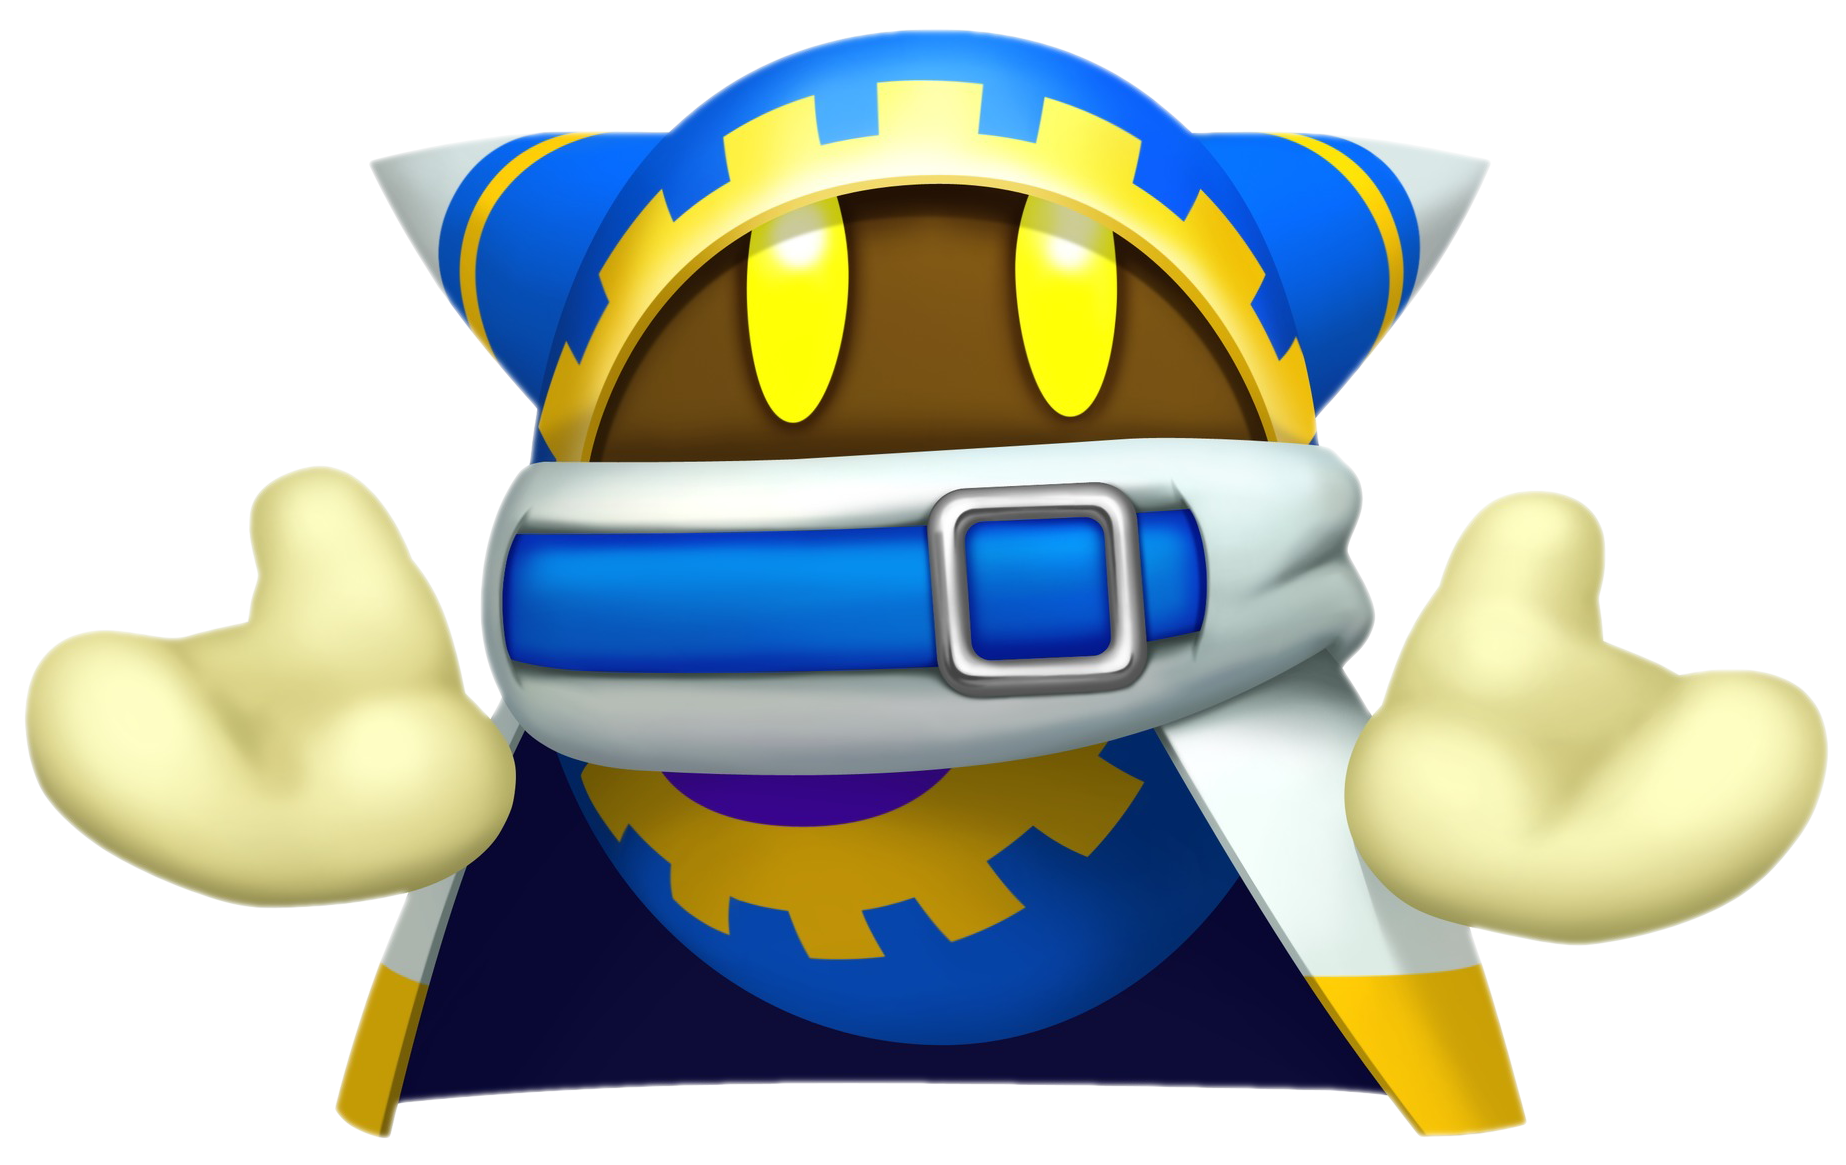 Anime Characters Kirby Wiki : Magolor kirby wiki fandom powered by wikia